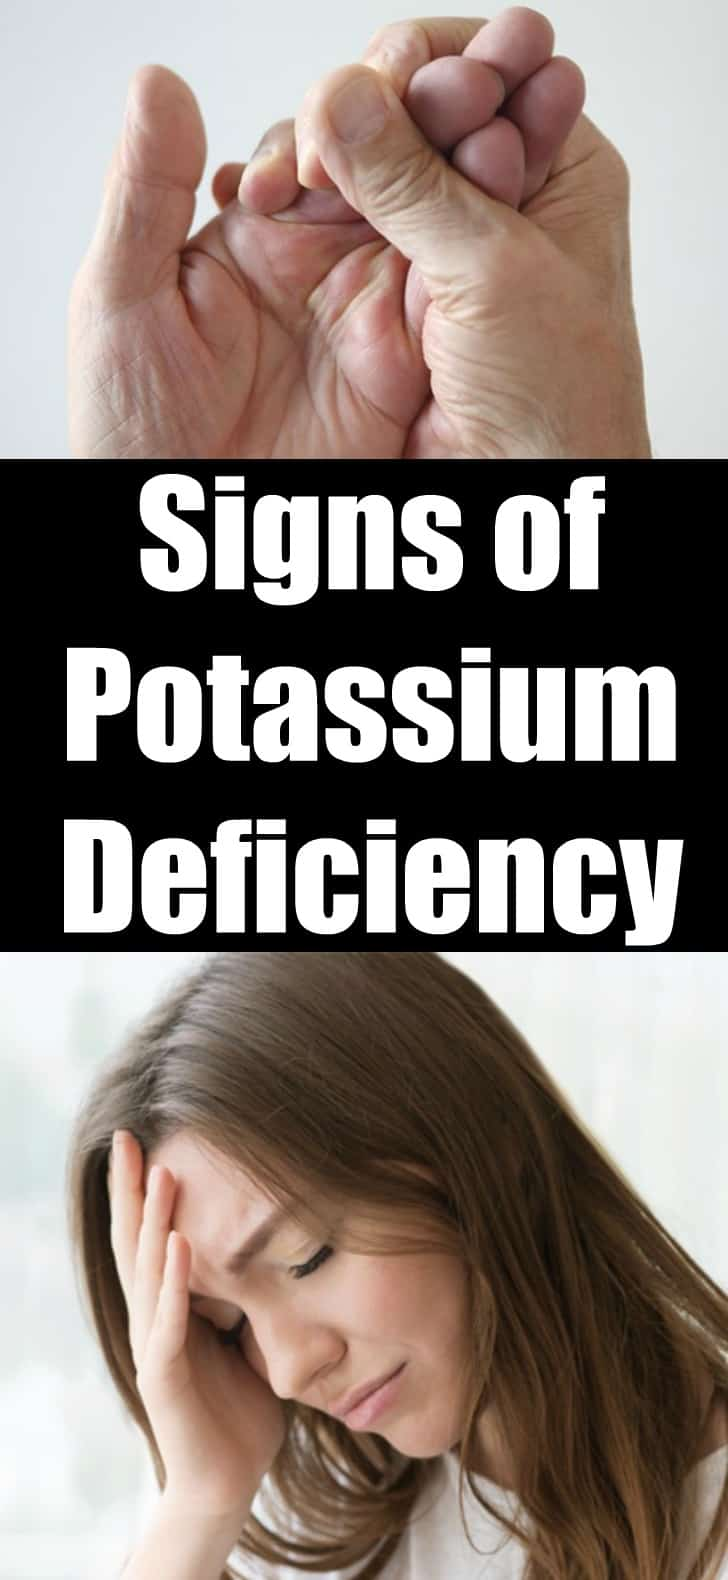 7 Signs of Potassium Deficiency You Should Not Ignore!